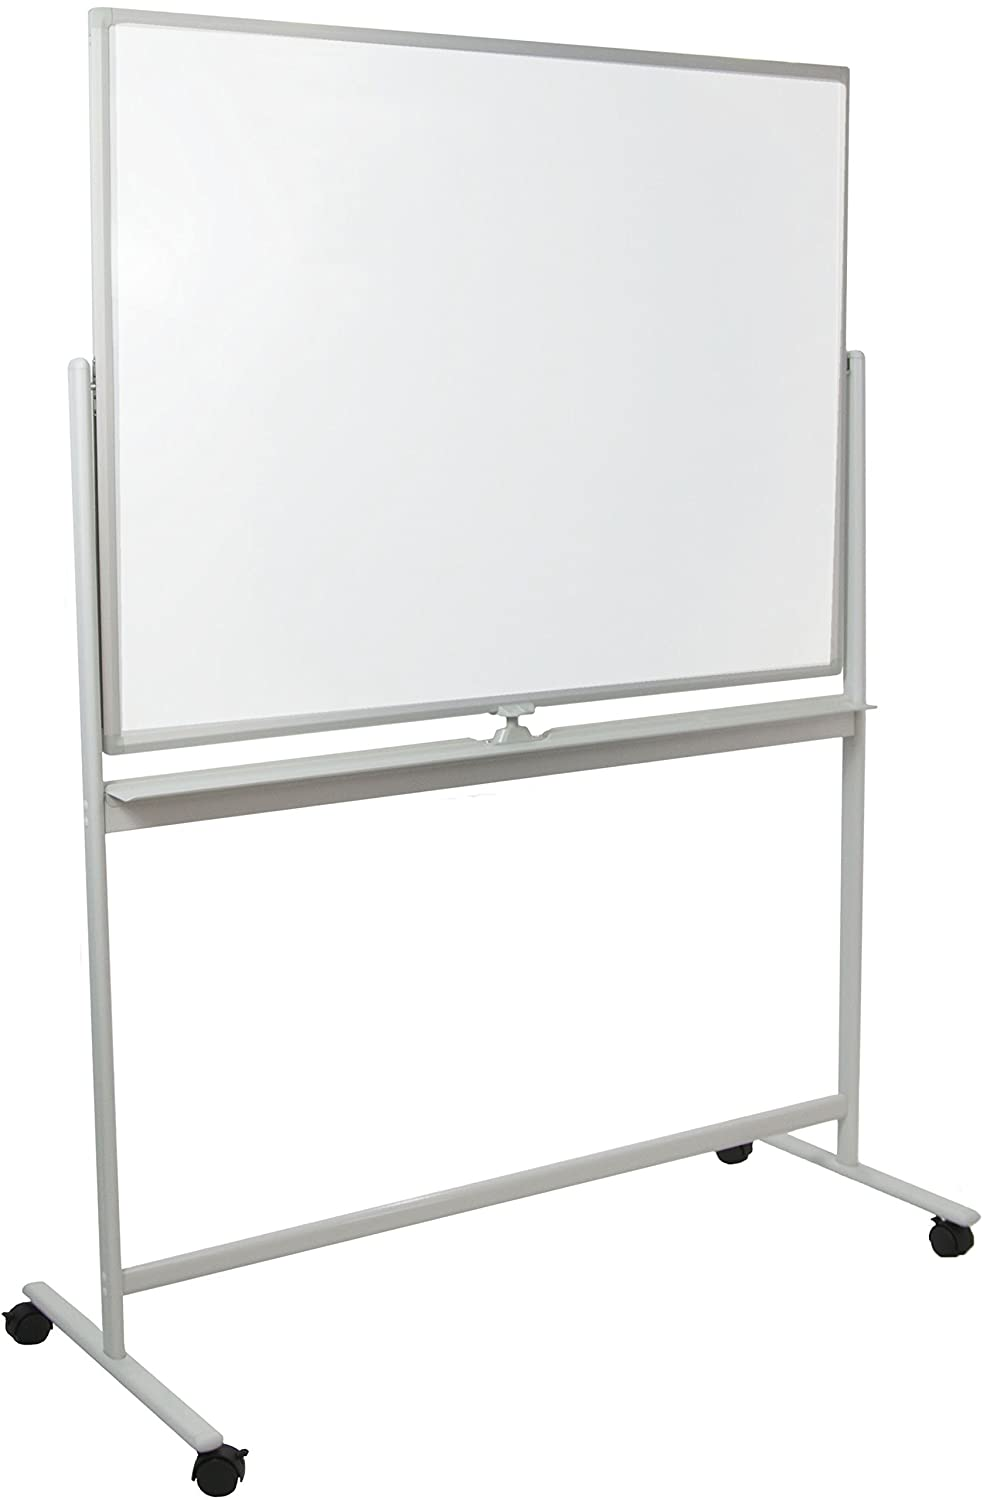 "VIVO Mobile Dry Erase Board (48""x36"") Double Sided Magnetic Whiteboard Aluminum Frame Stand (CART-WB48)"